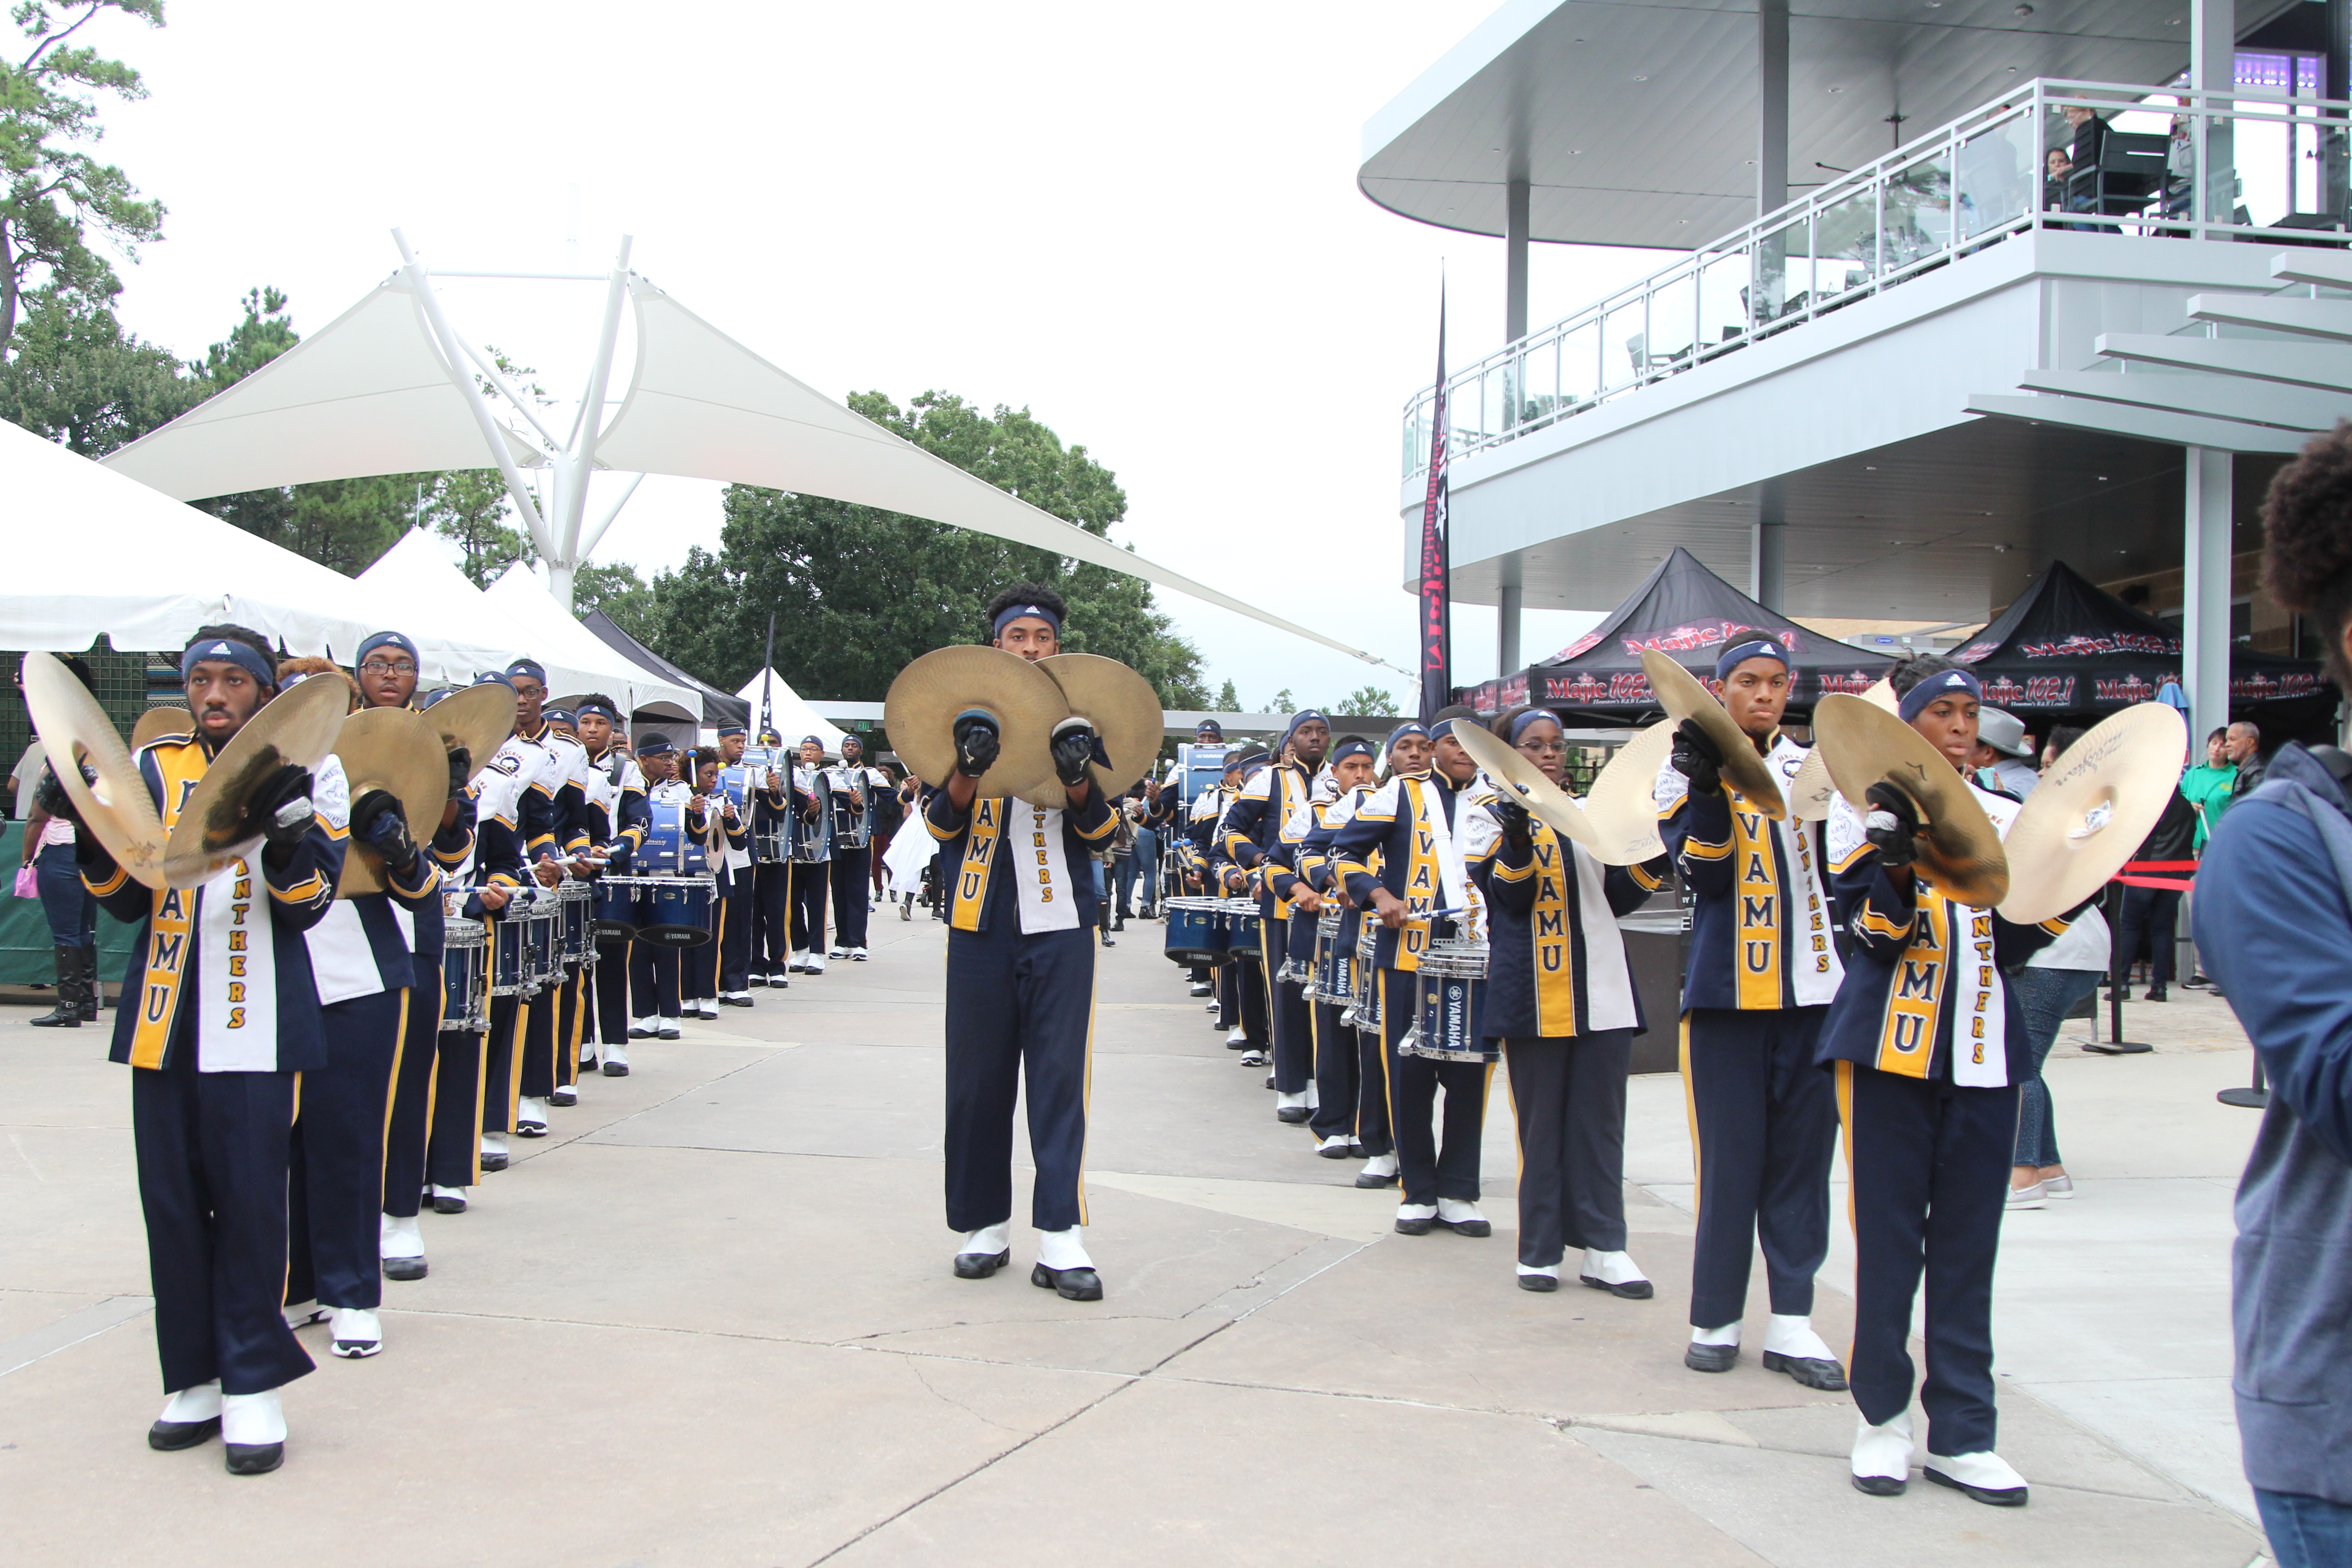 Prairie View A&M Marching Storm - Majic Under The Stars 2018